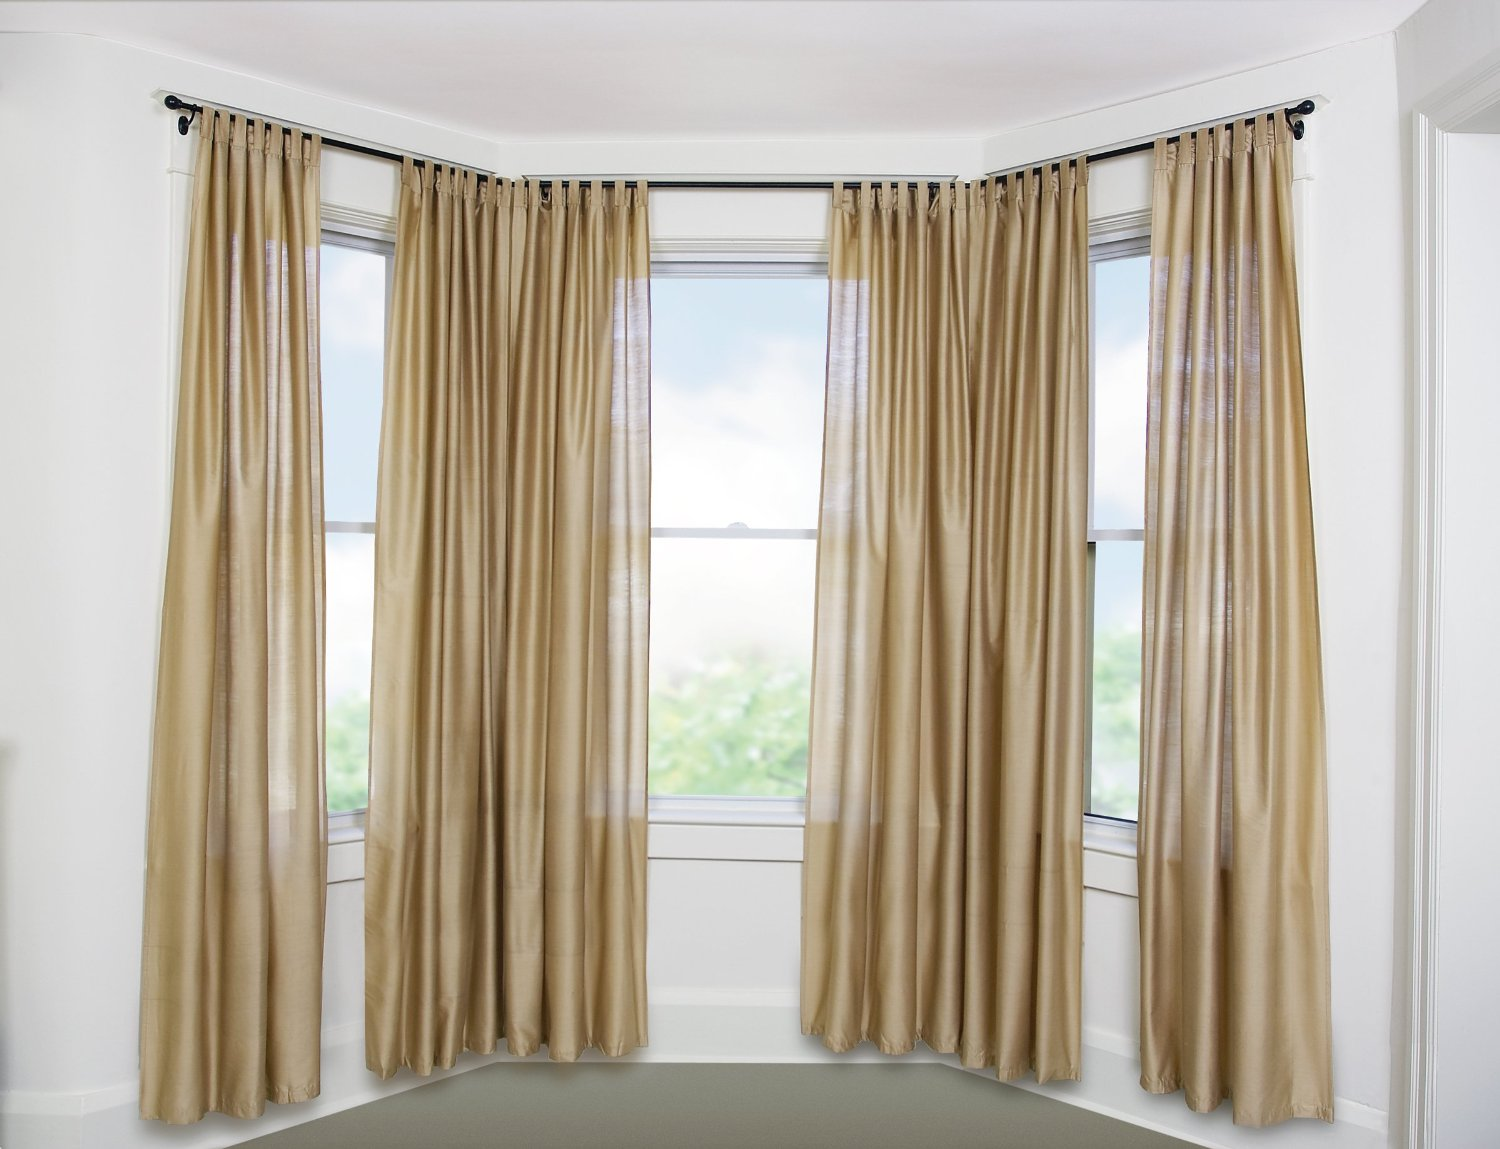 Small Room Interior Design Curtain Rods For Bay Windows Homesfeed